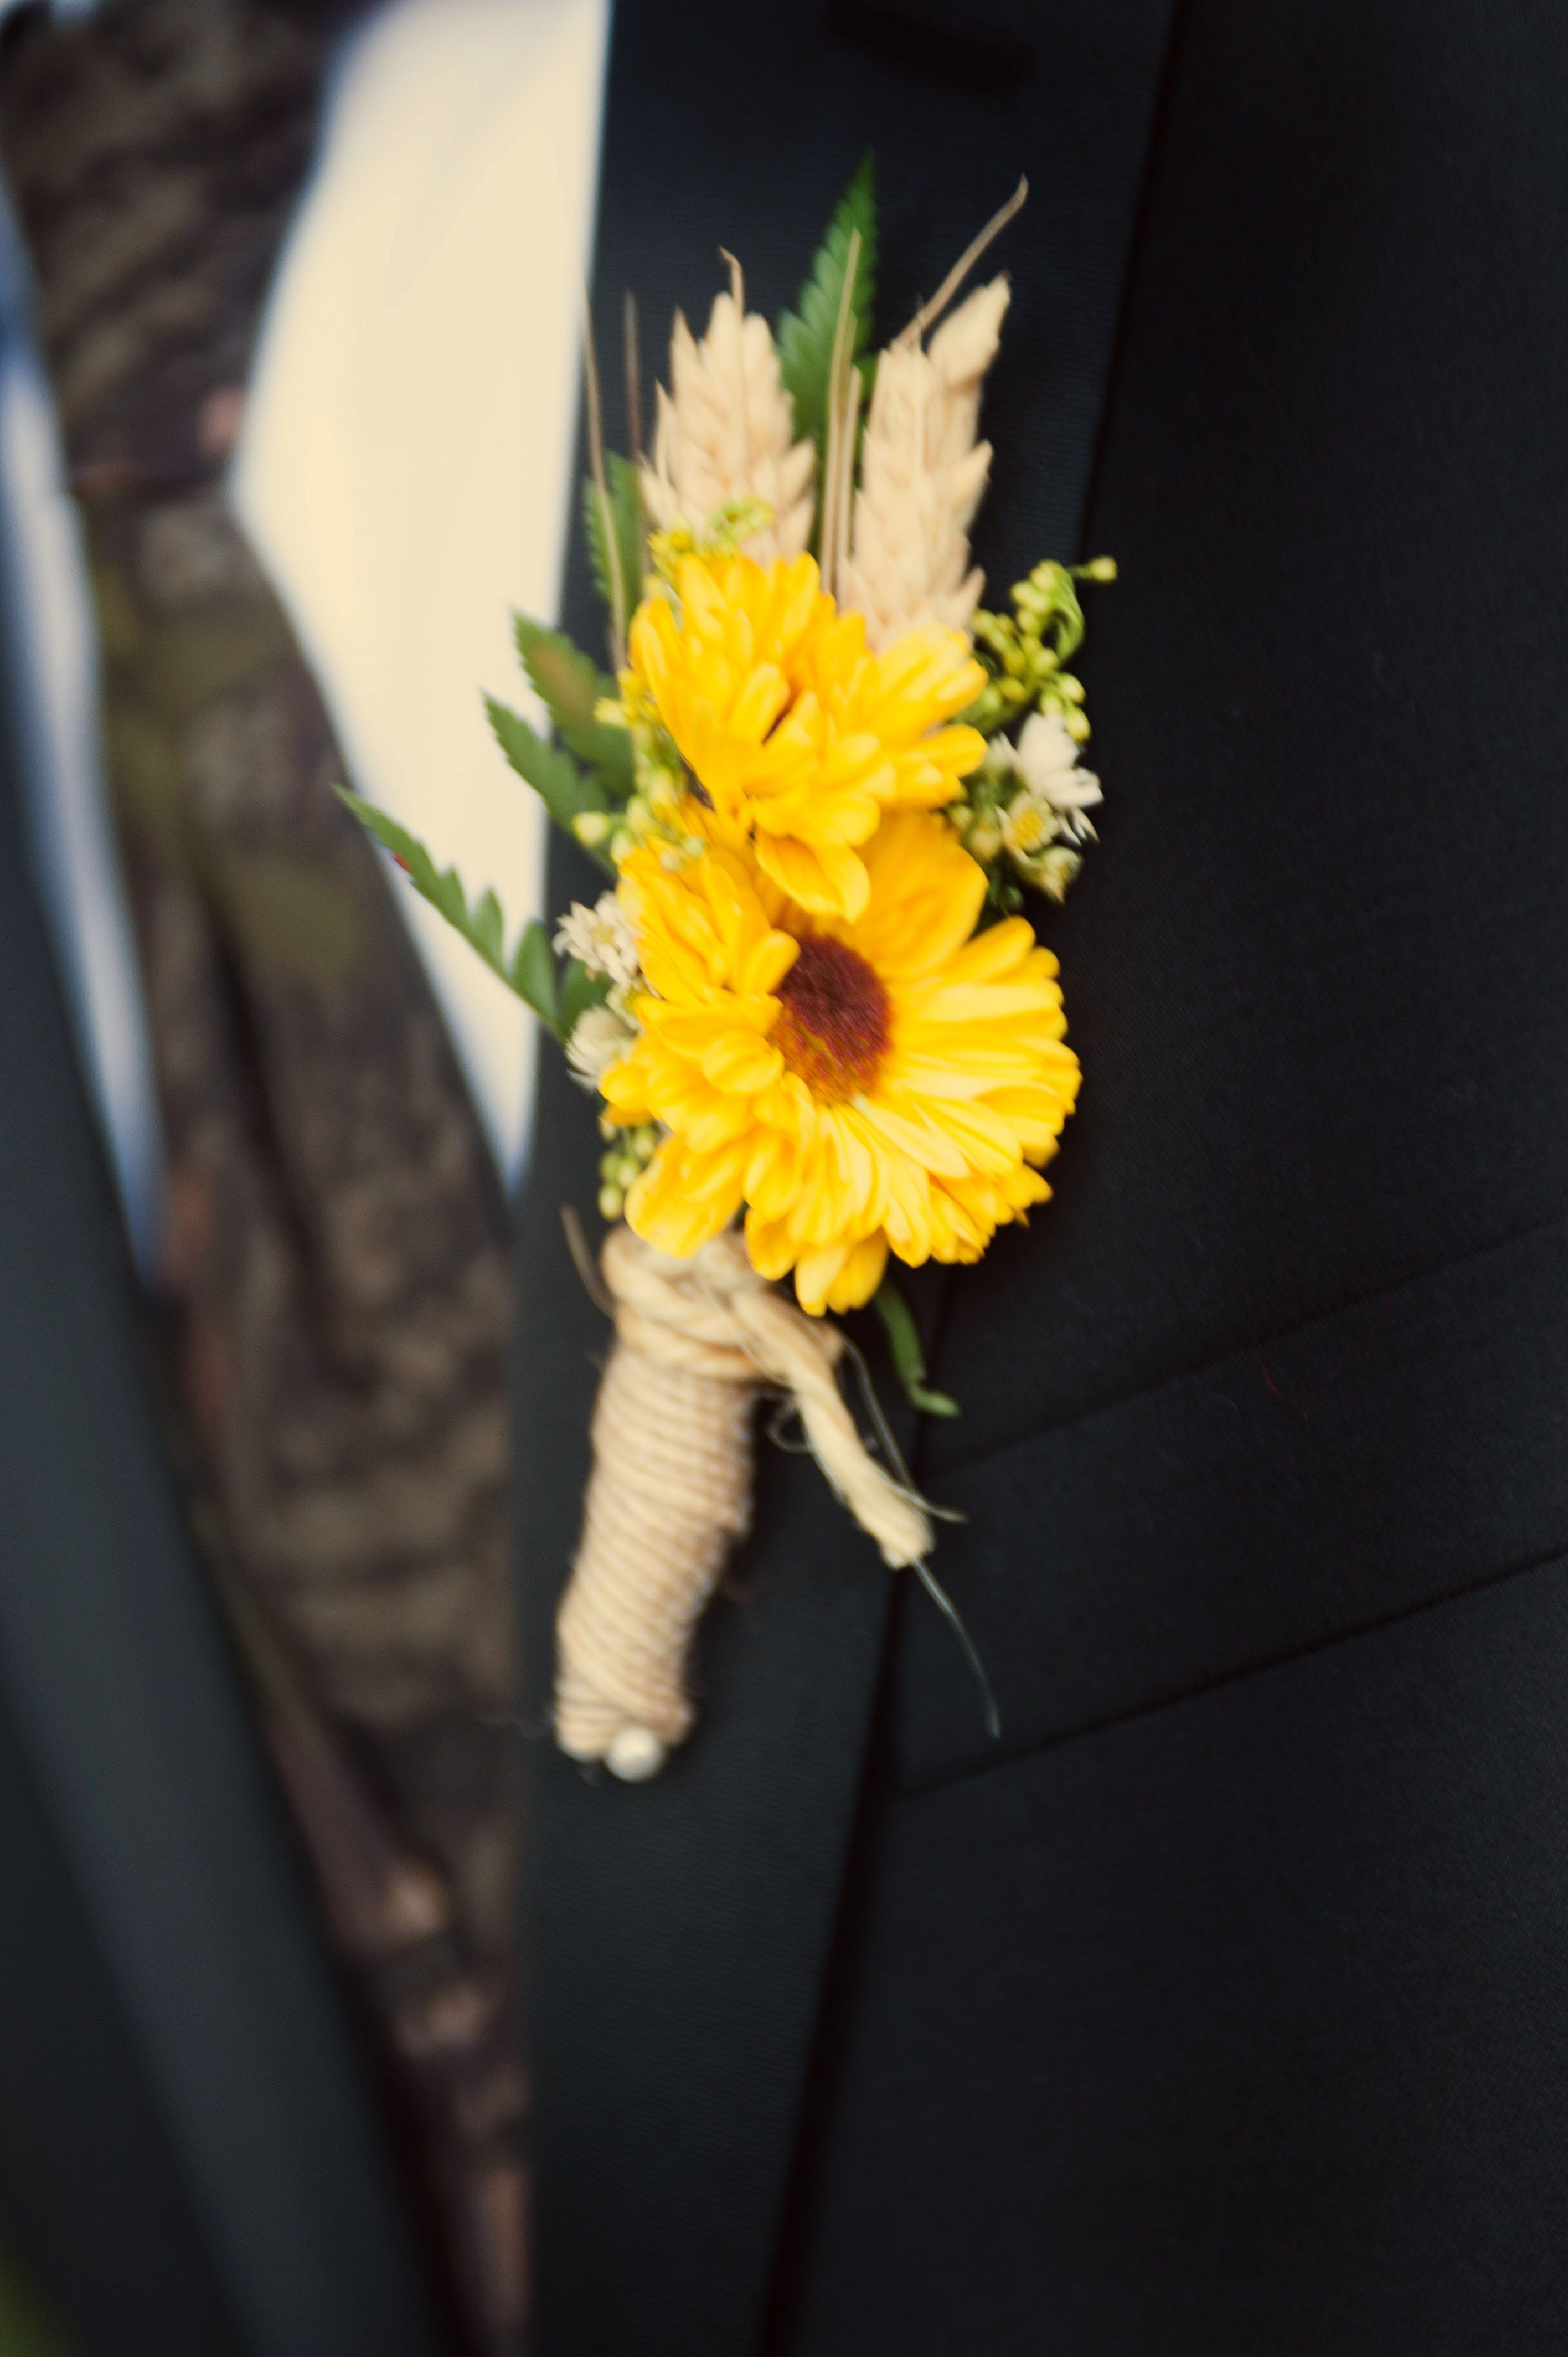 Sunflower Viking Pom Boutonniere By Clark County Floral By Tara Thackeray graphy